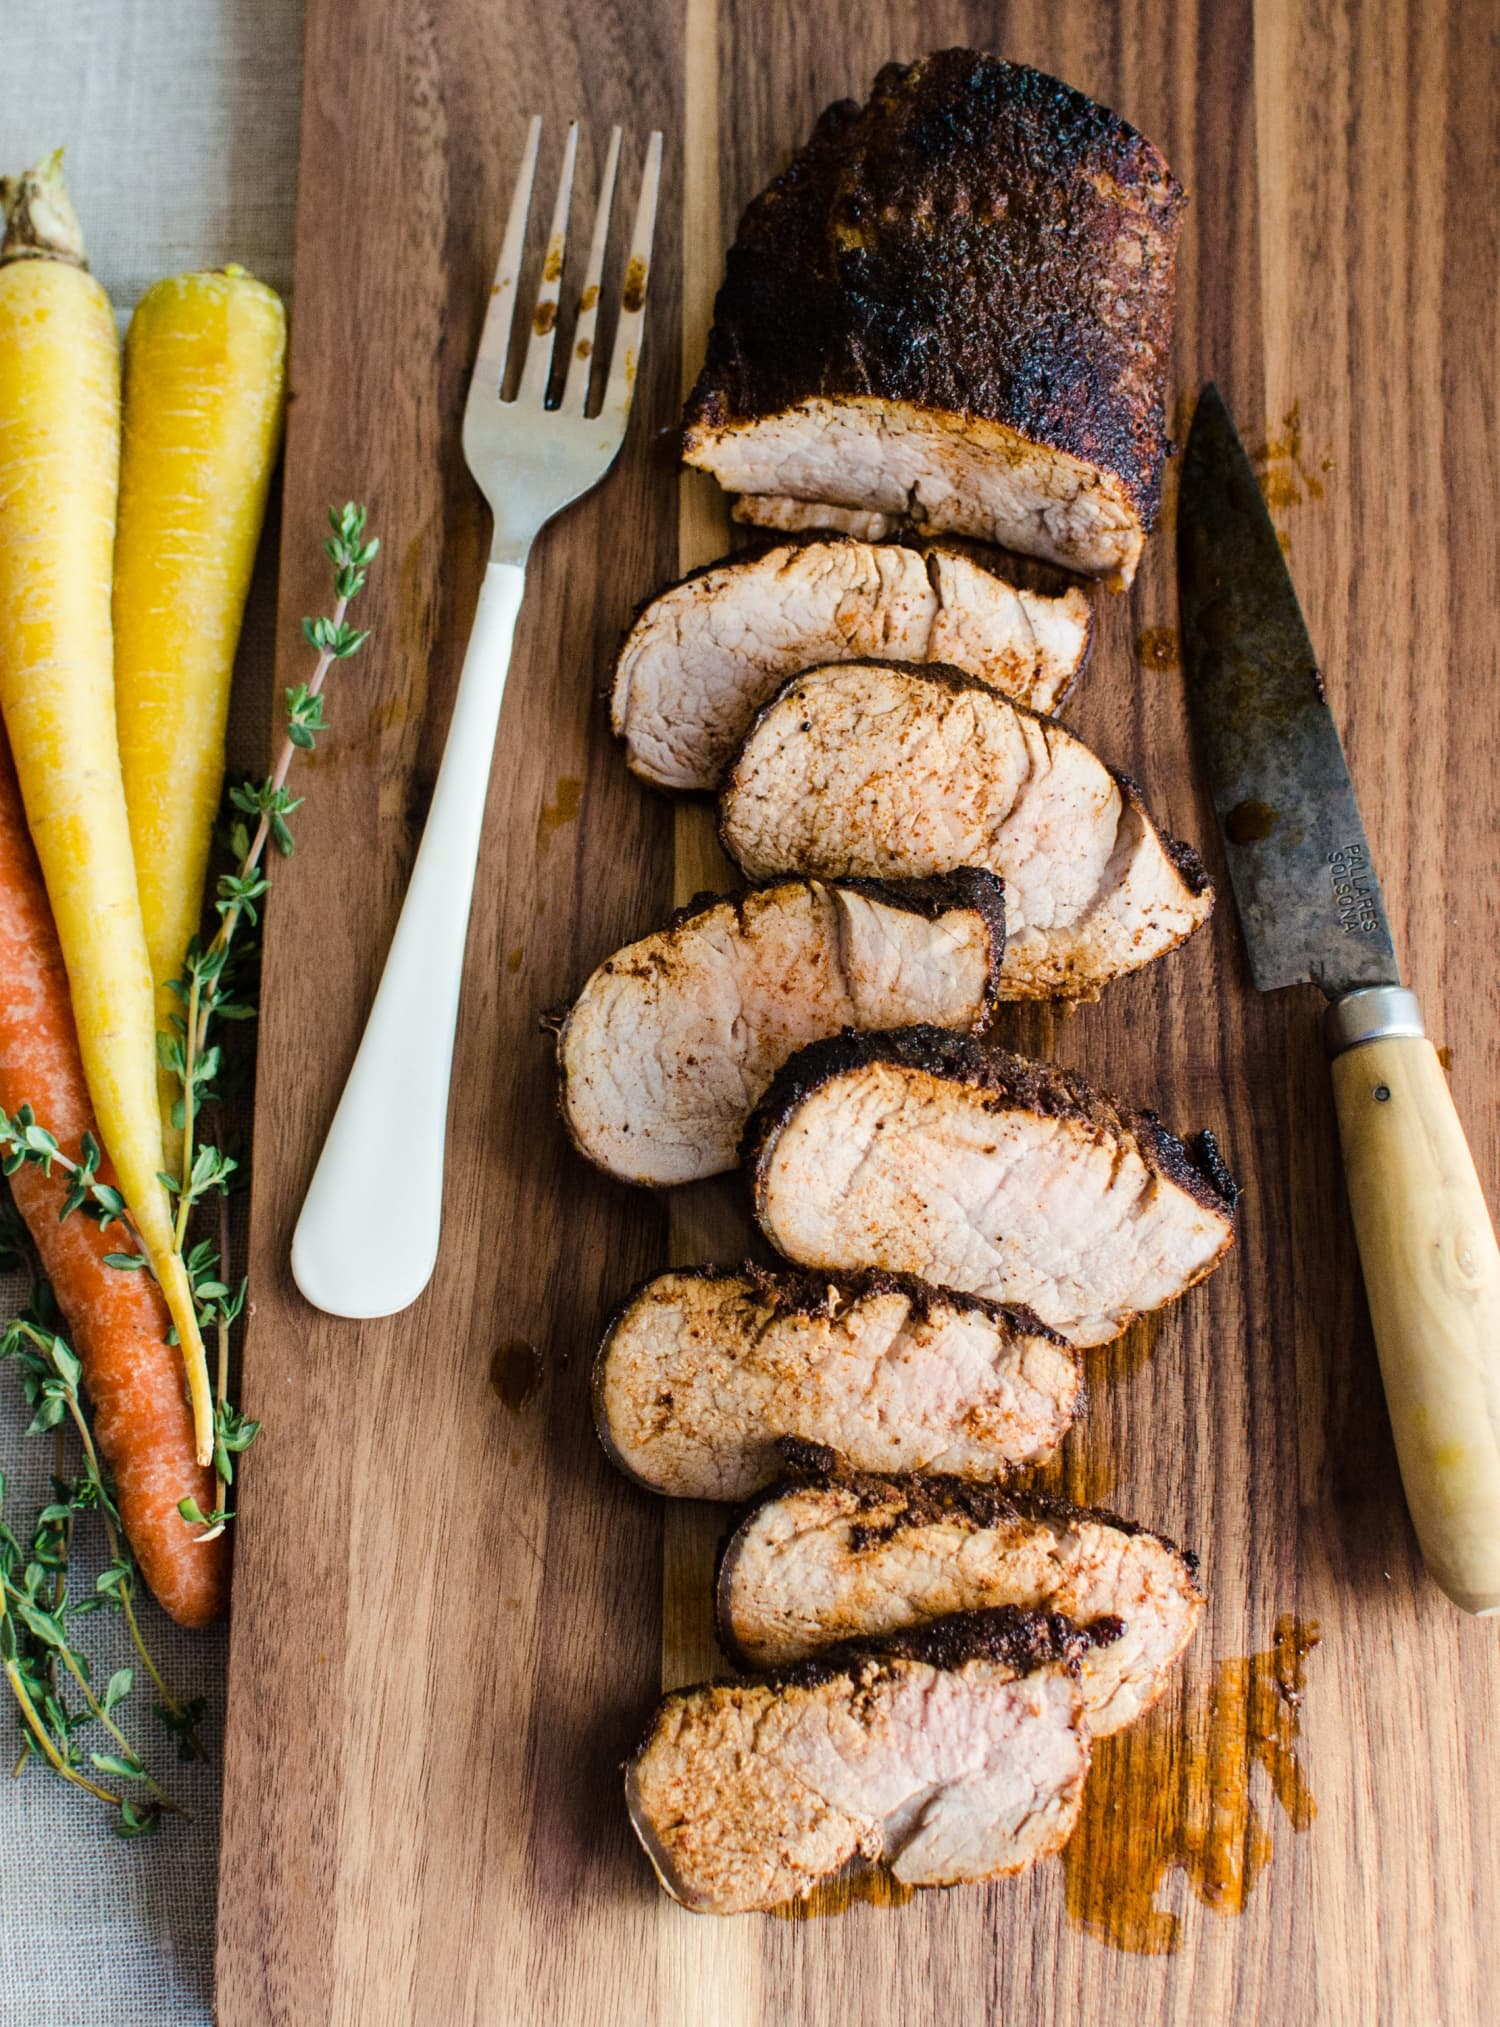 10 Easy Pork Tenderloin Recipes to Make Tonight